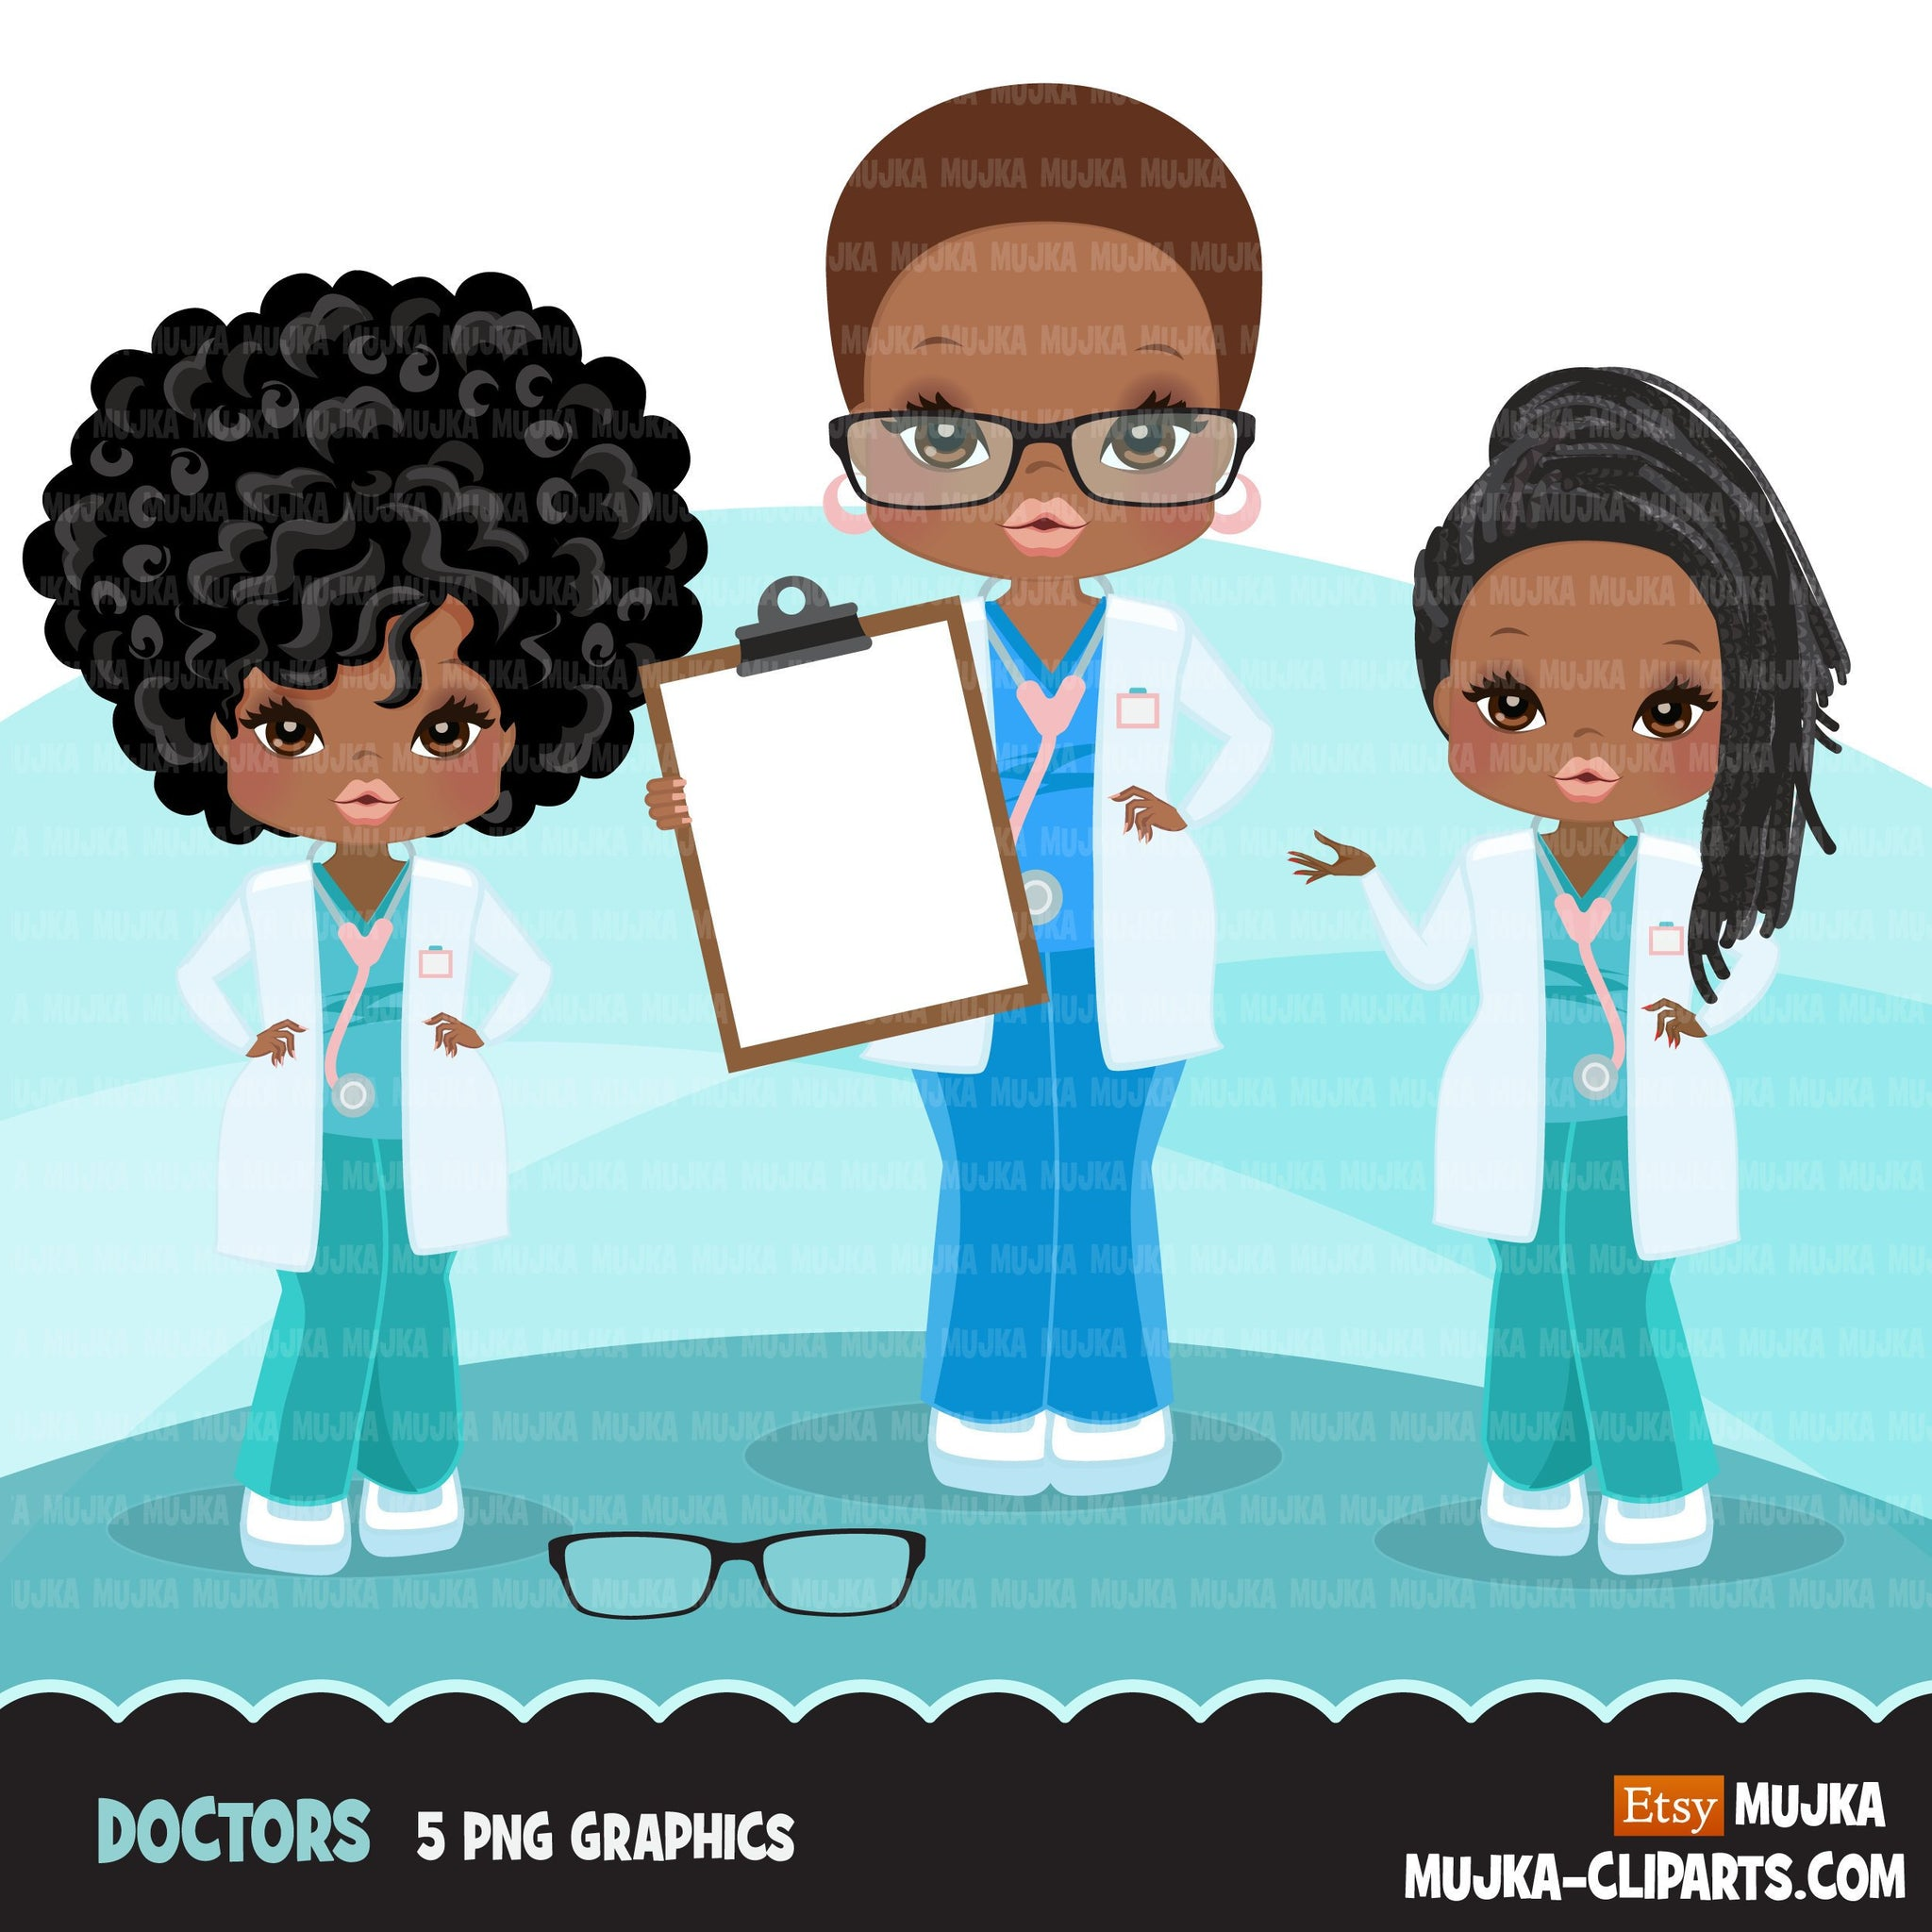 Afro Doctor clipart with scrubs , patient chart graphics, print and cut PNG T-Shirt Designs, Medical clip art, black woman